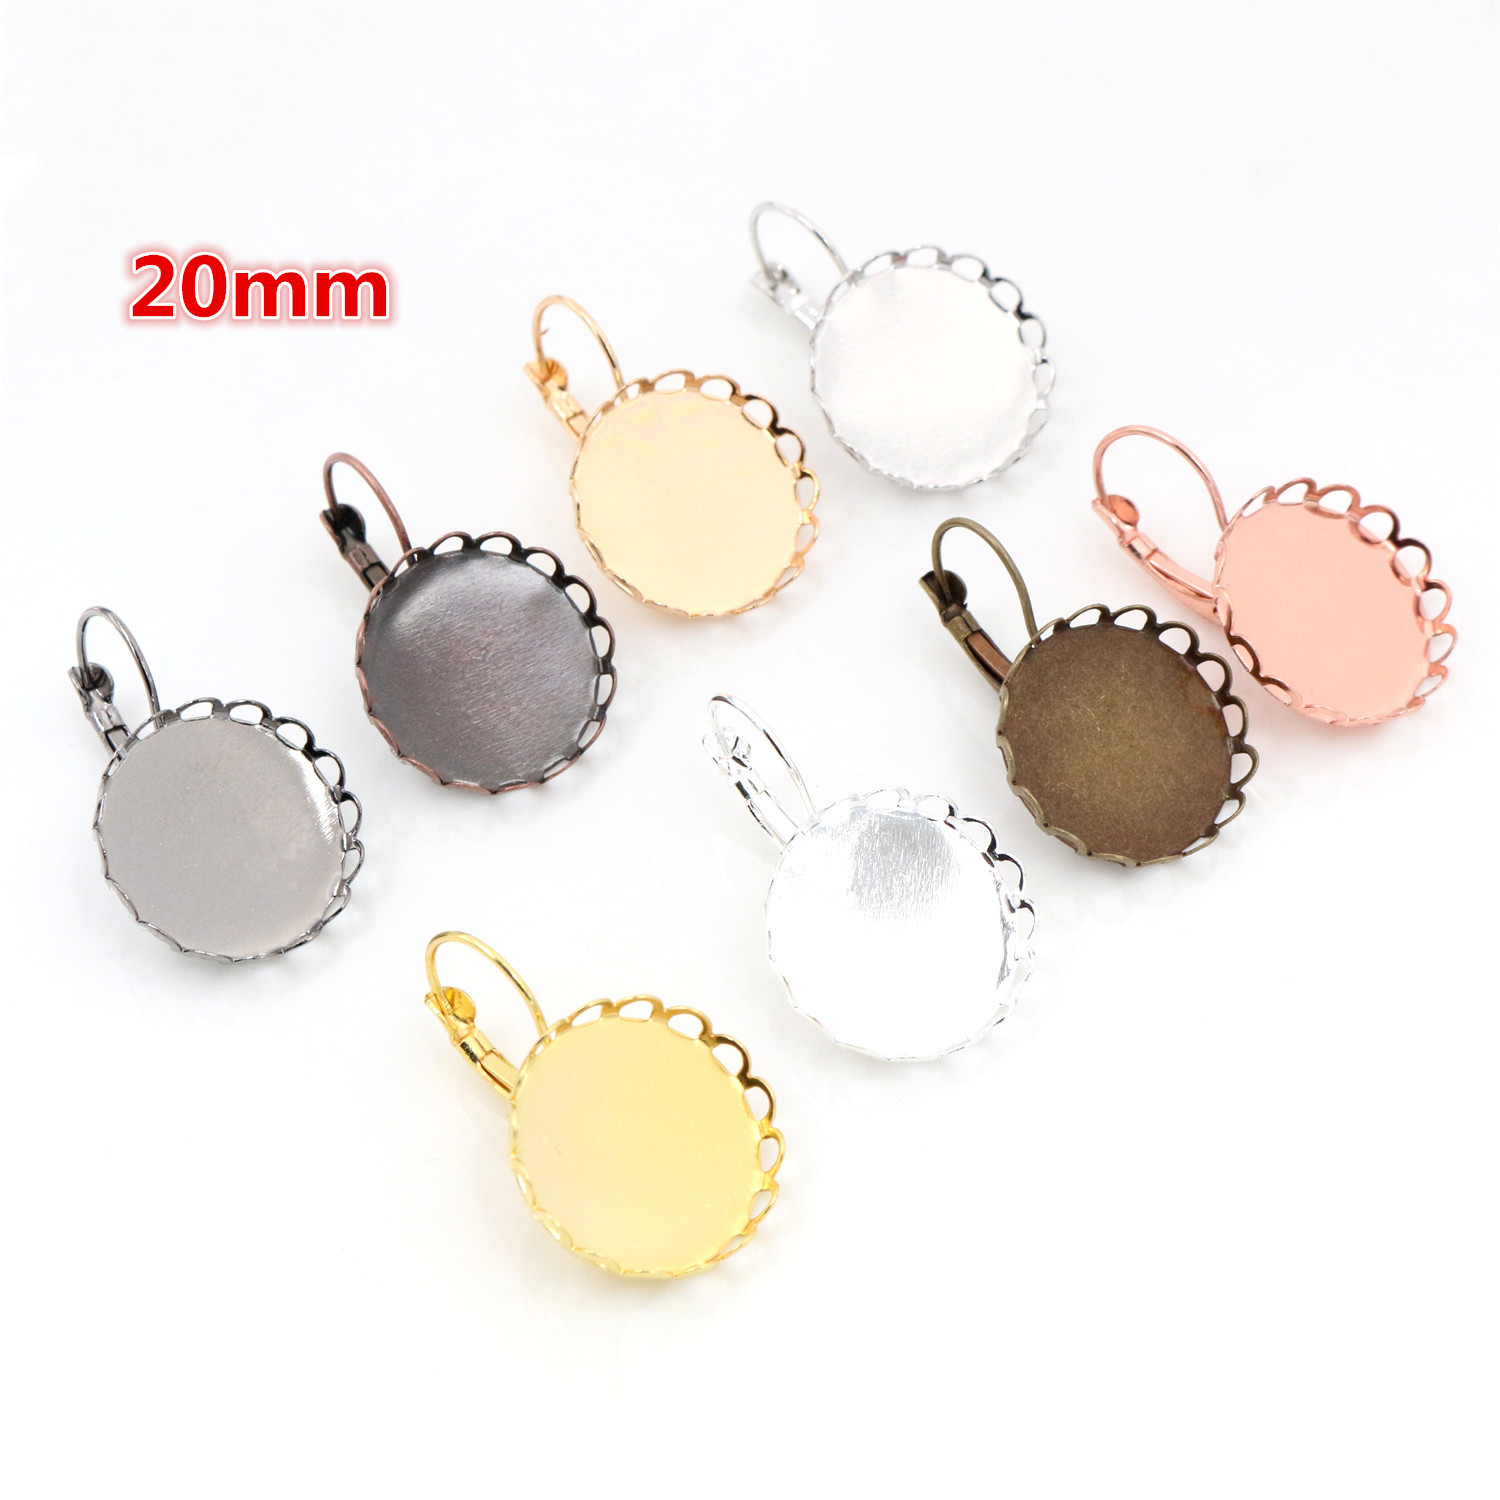 20mm 10pcs/Lot 8 Colors Plated French Lever Back Earrings Blank/Base,fit 20mm Glass Cabochons,buttons;earring Bezels